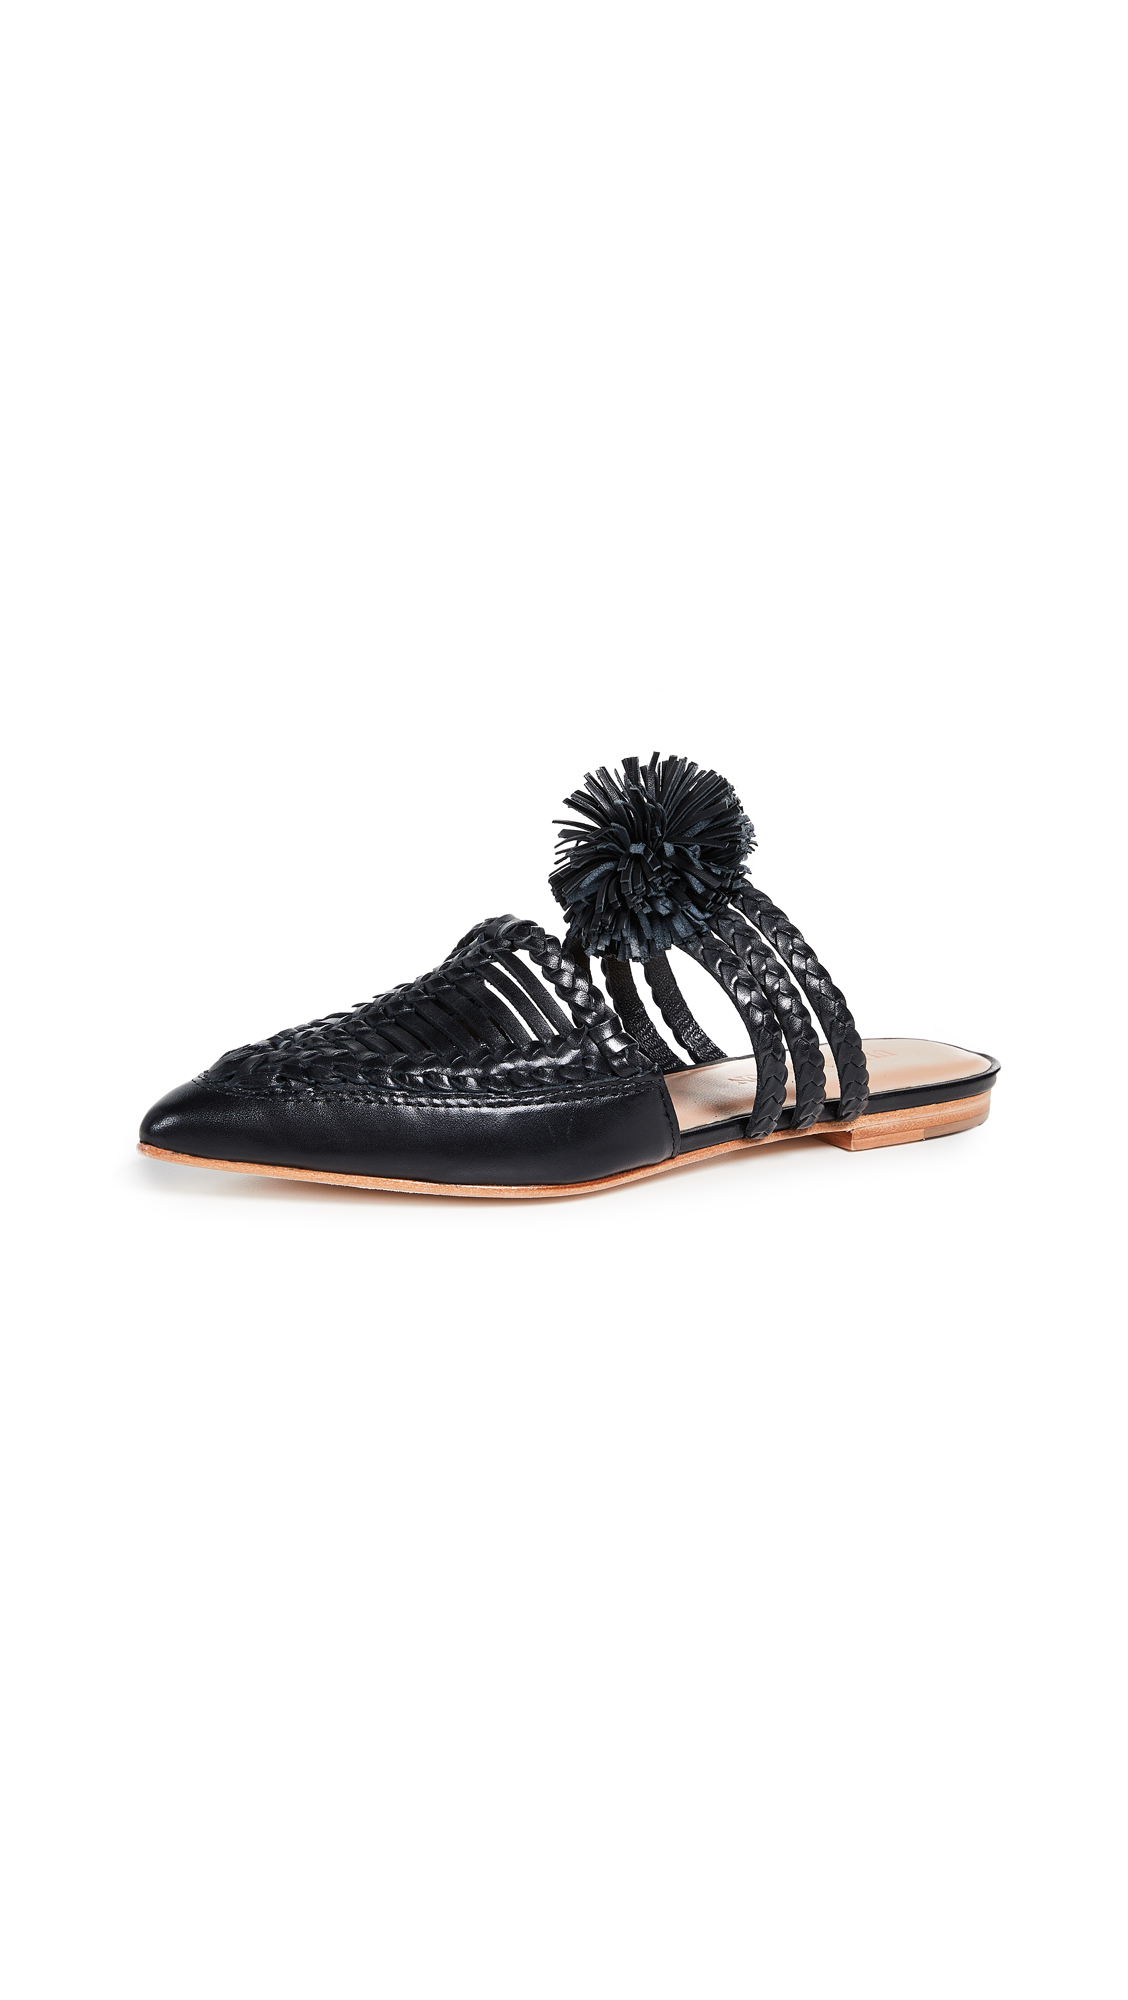 Ulla Johnson Marah Flat Mules - Black